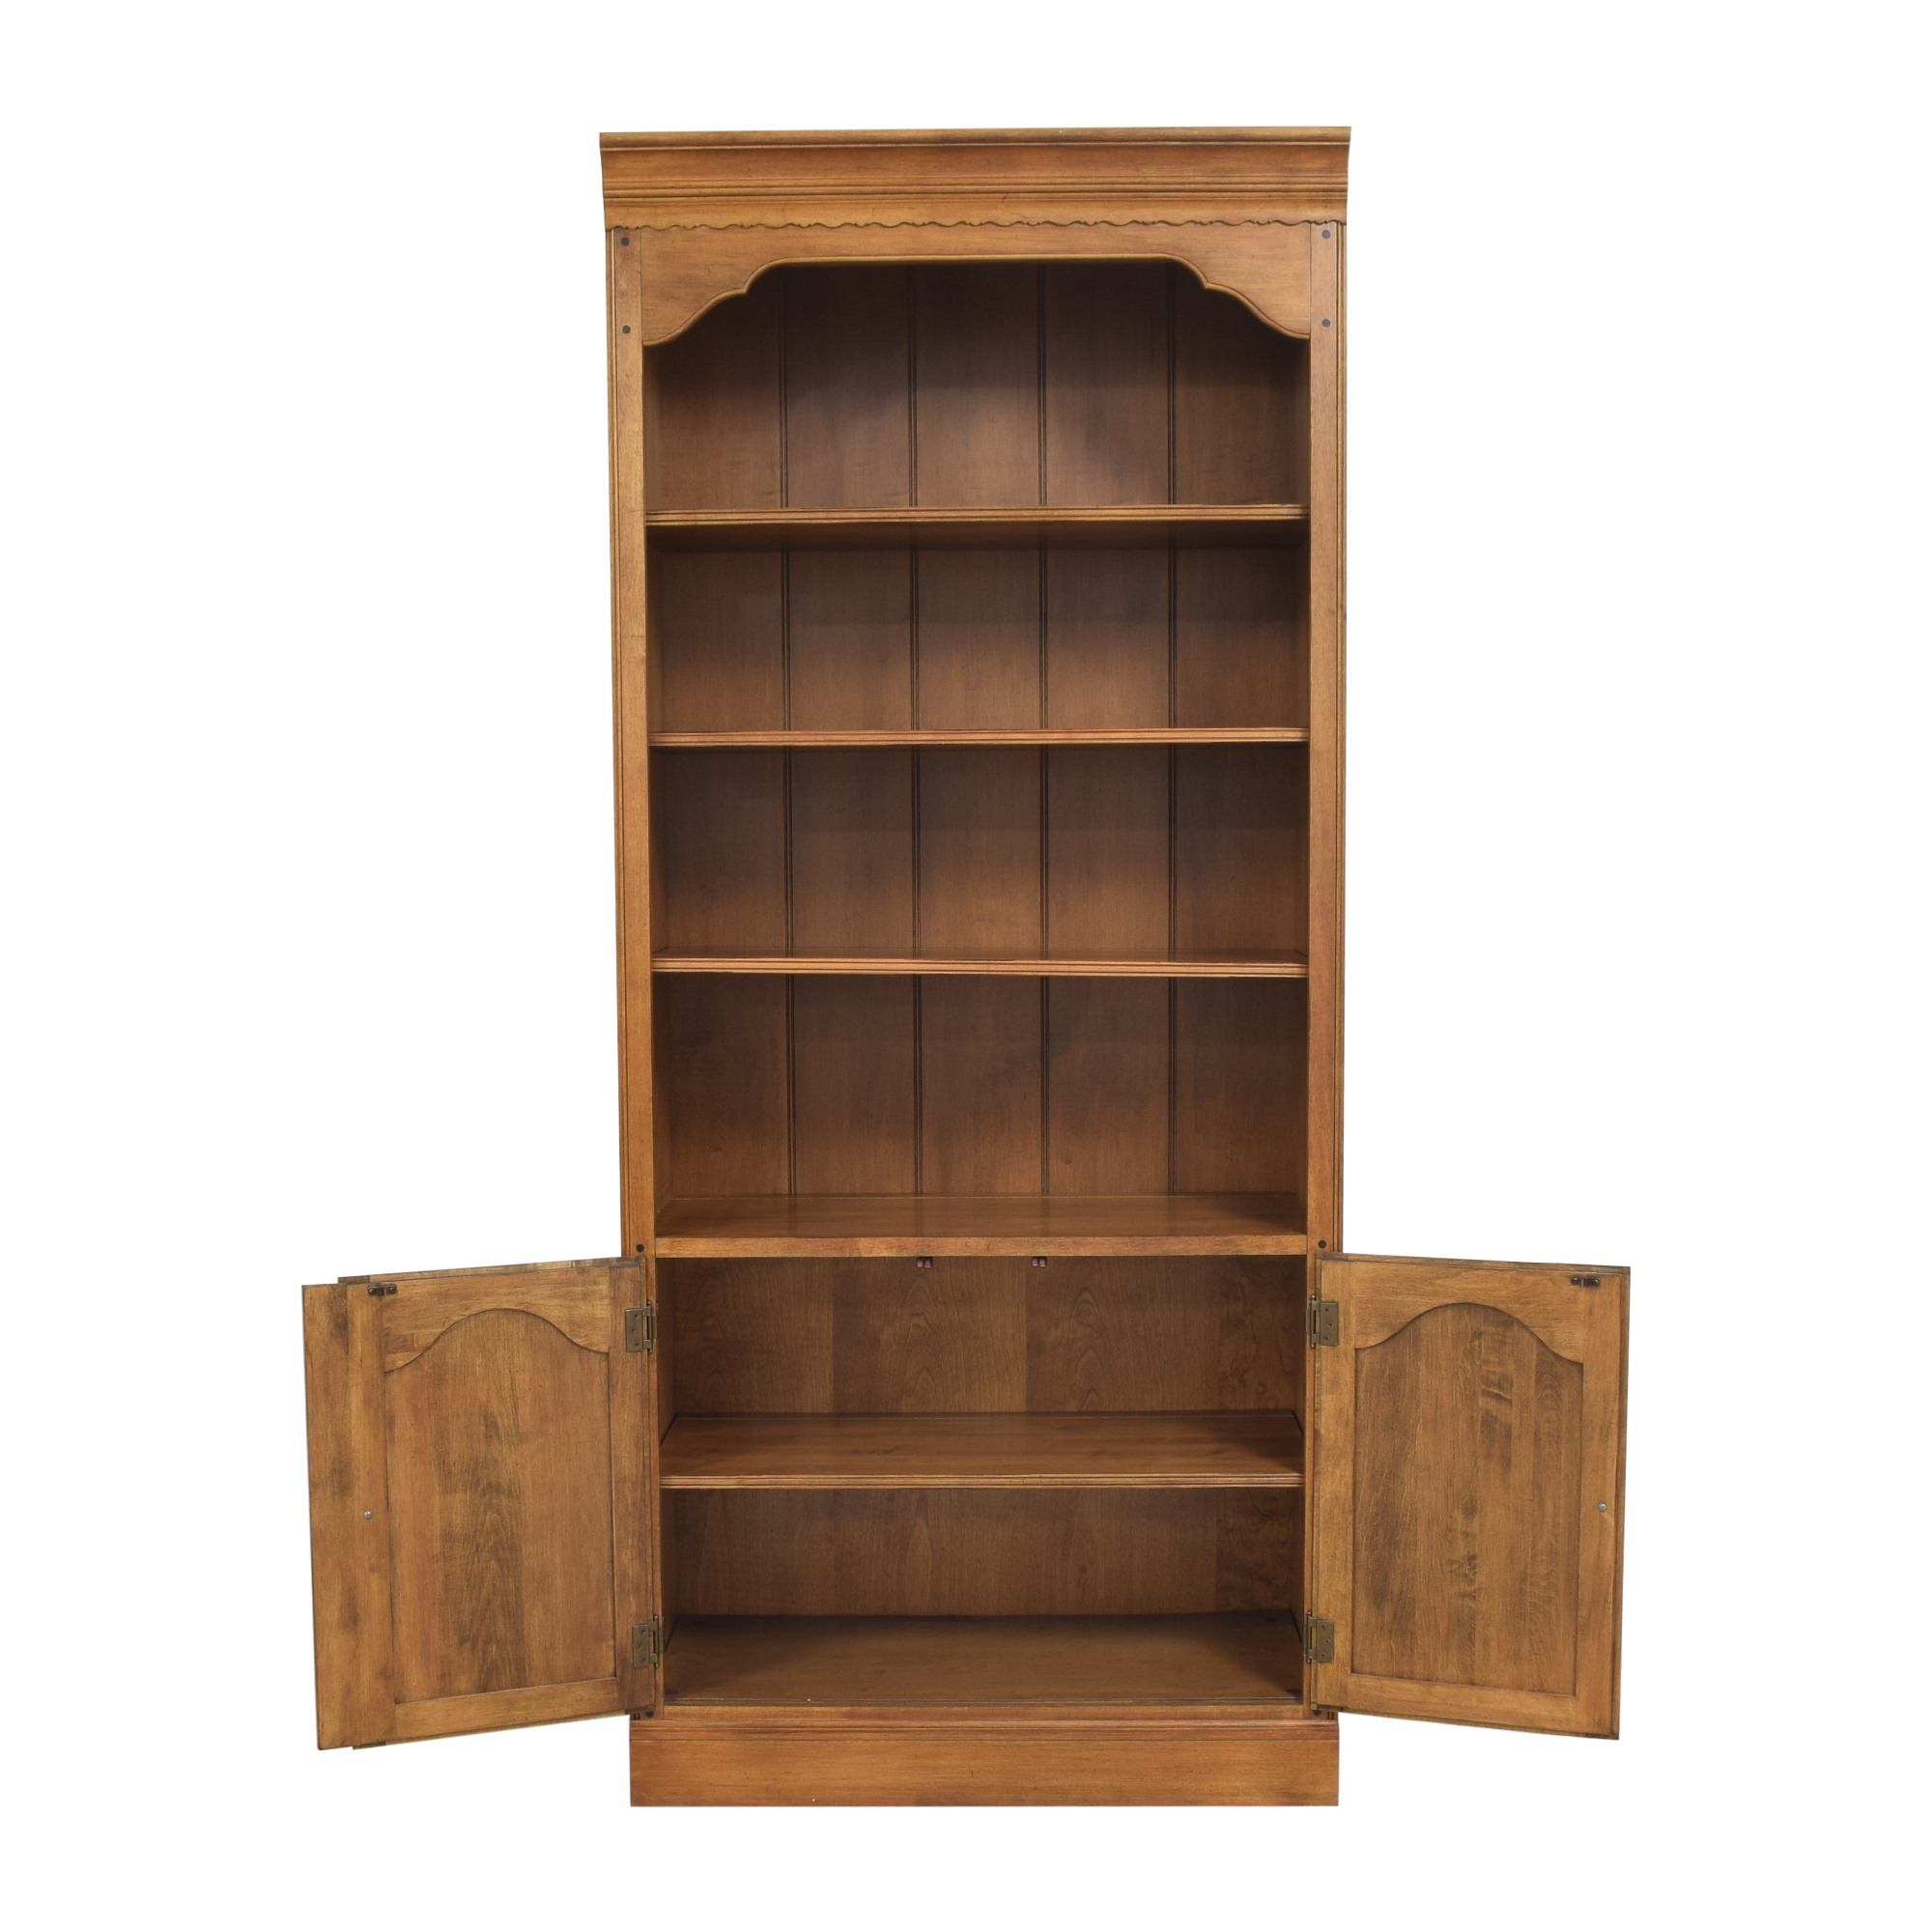 Ethan Allen Circa 1776 Collection Bookcase with Cabinet / Storage